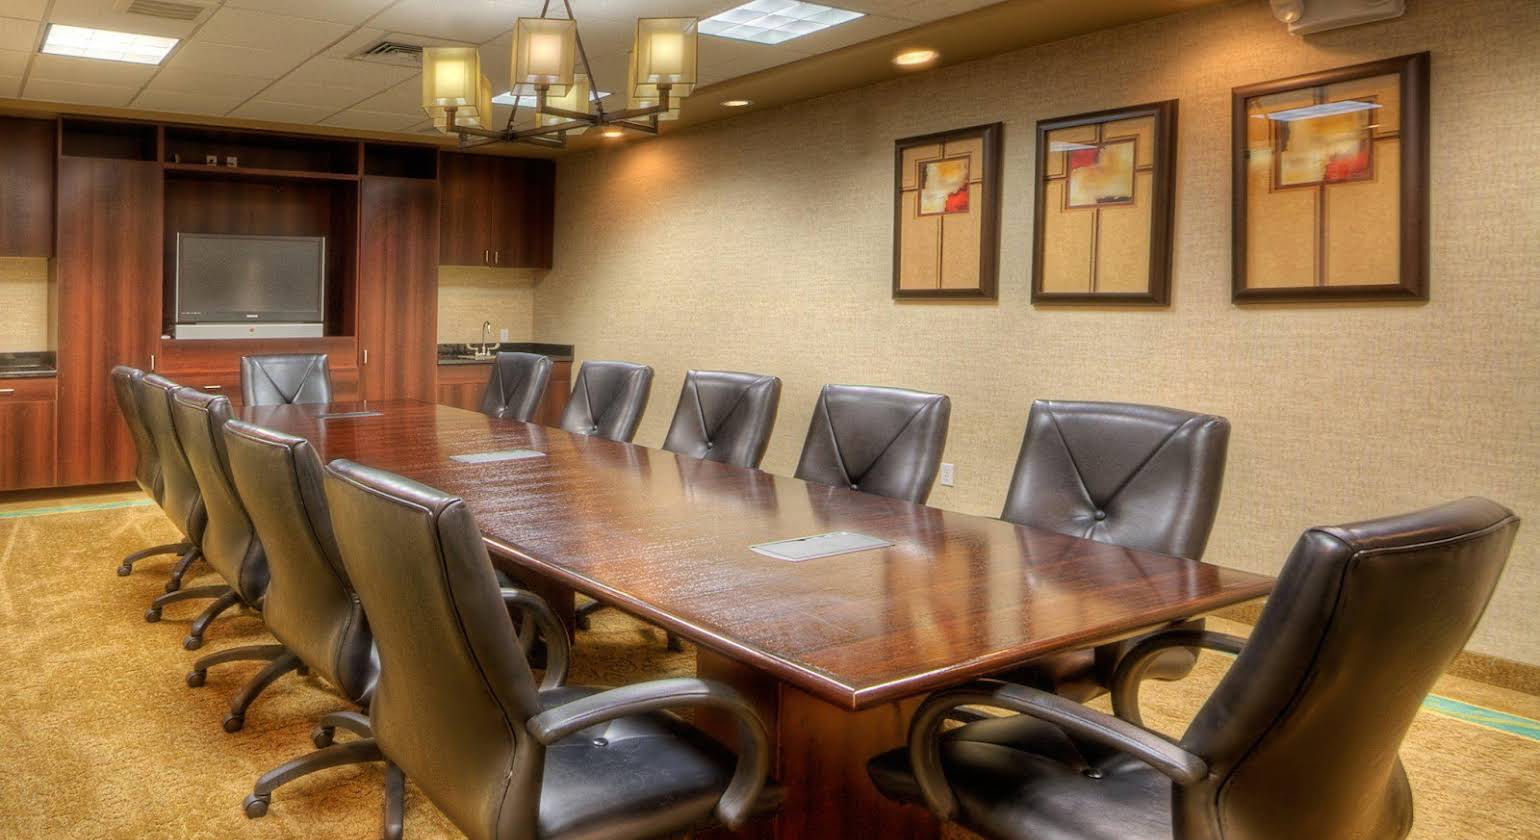 Holiday Inn Hotel and Suites Albuquerque - North Interstate 25